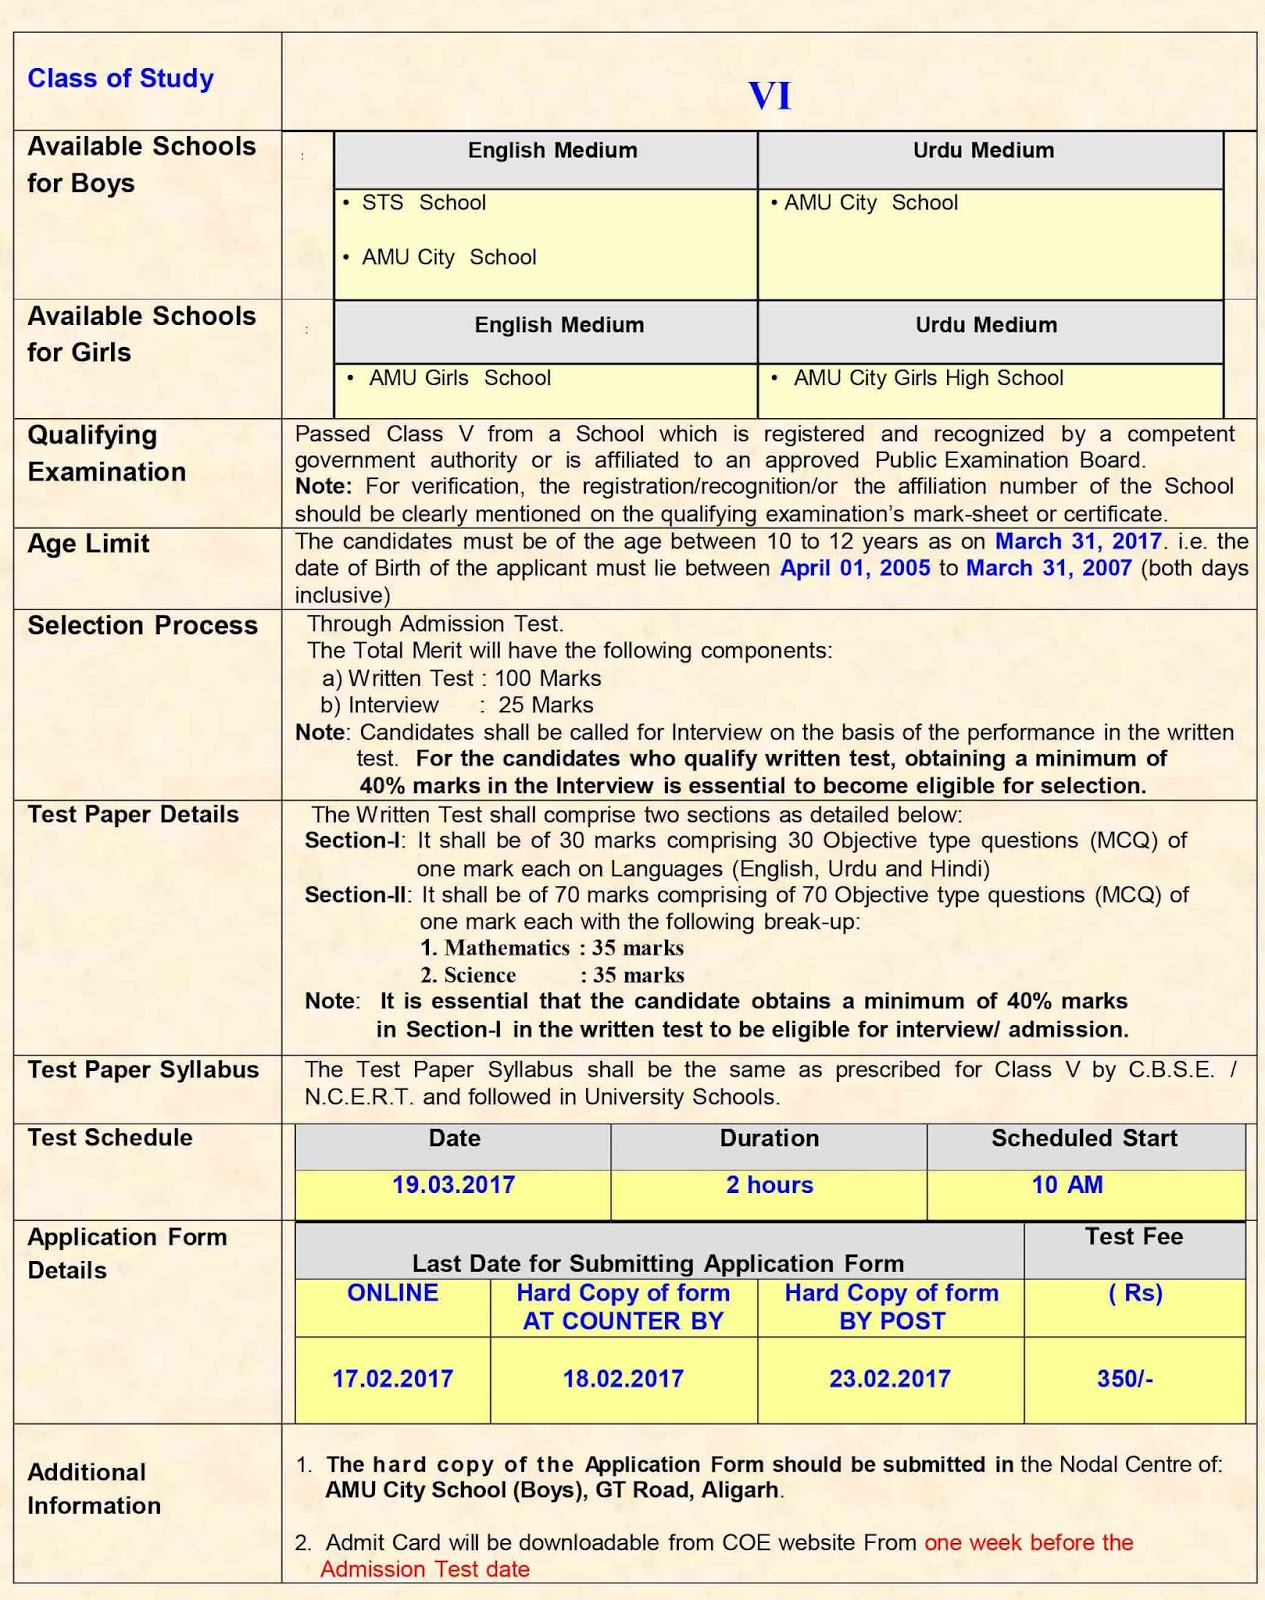 AMU Admission 2017 - 18, last date for apply 17th February on medical resume, medical apps, medical schedule, medical rules, medical history, medical floor plan, medical management, medical application printable, medical letters of recommendation, medical questionnaire, medical training, medical insurance, medical application symbol, medical application design, medical application letter, medical interview, medical articles, medical background, healthcare form, medical references,